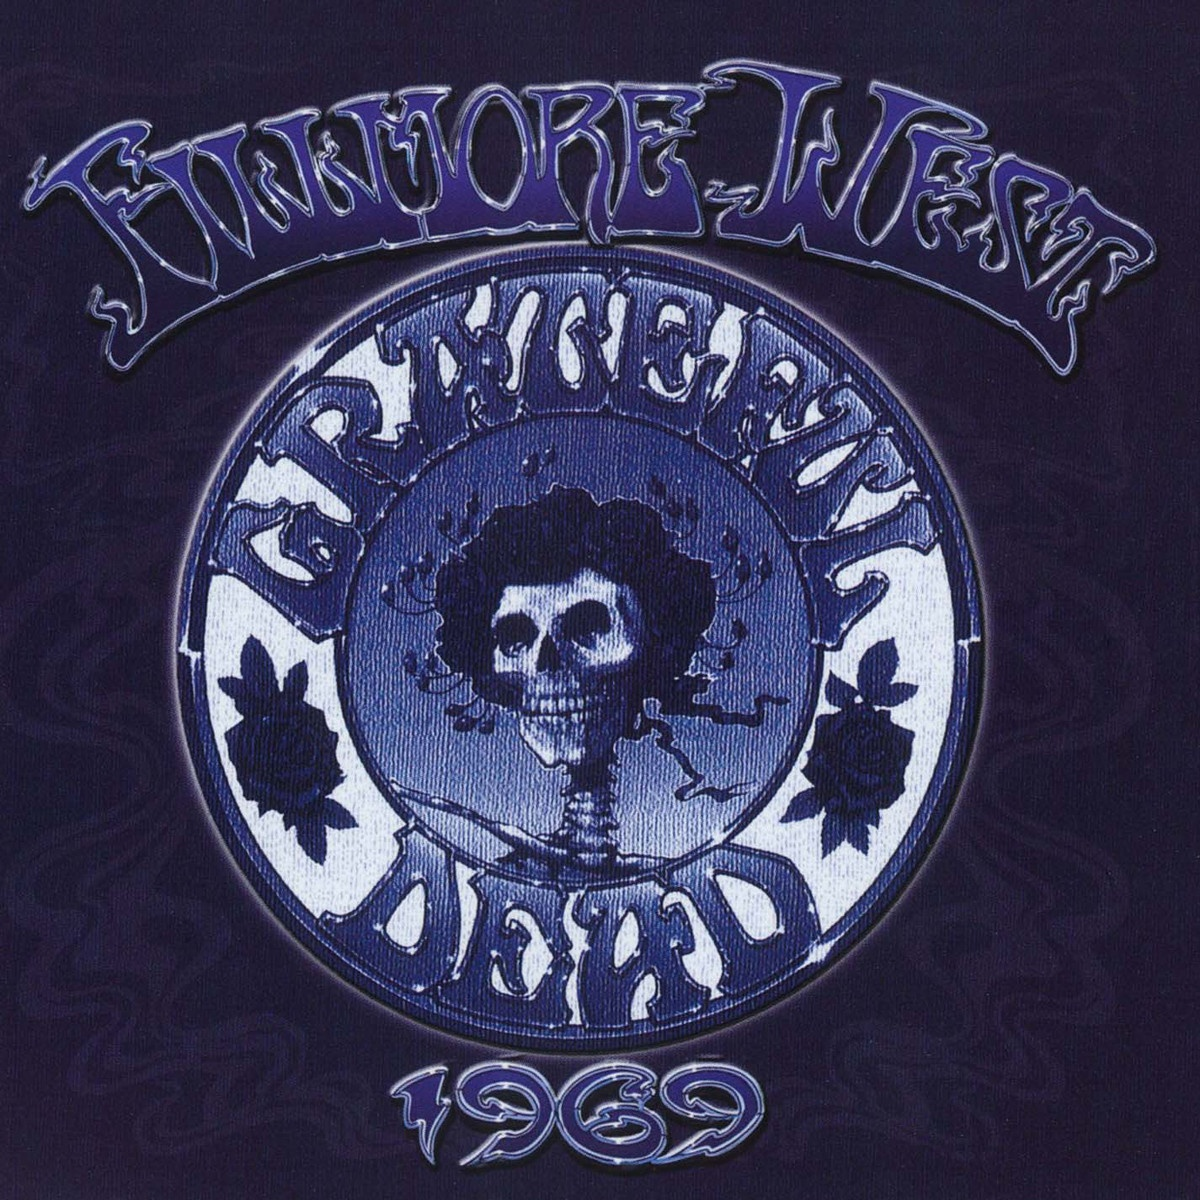 Jam [Live at Fillmore West March 2, 1969]